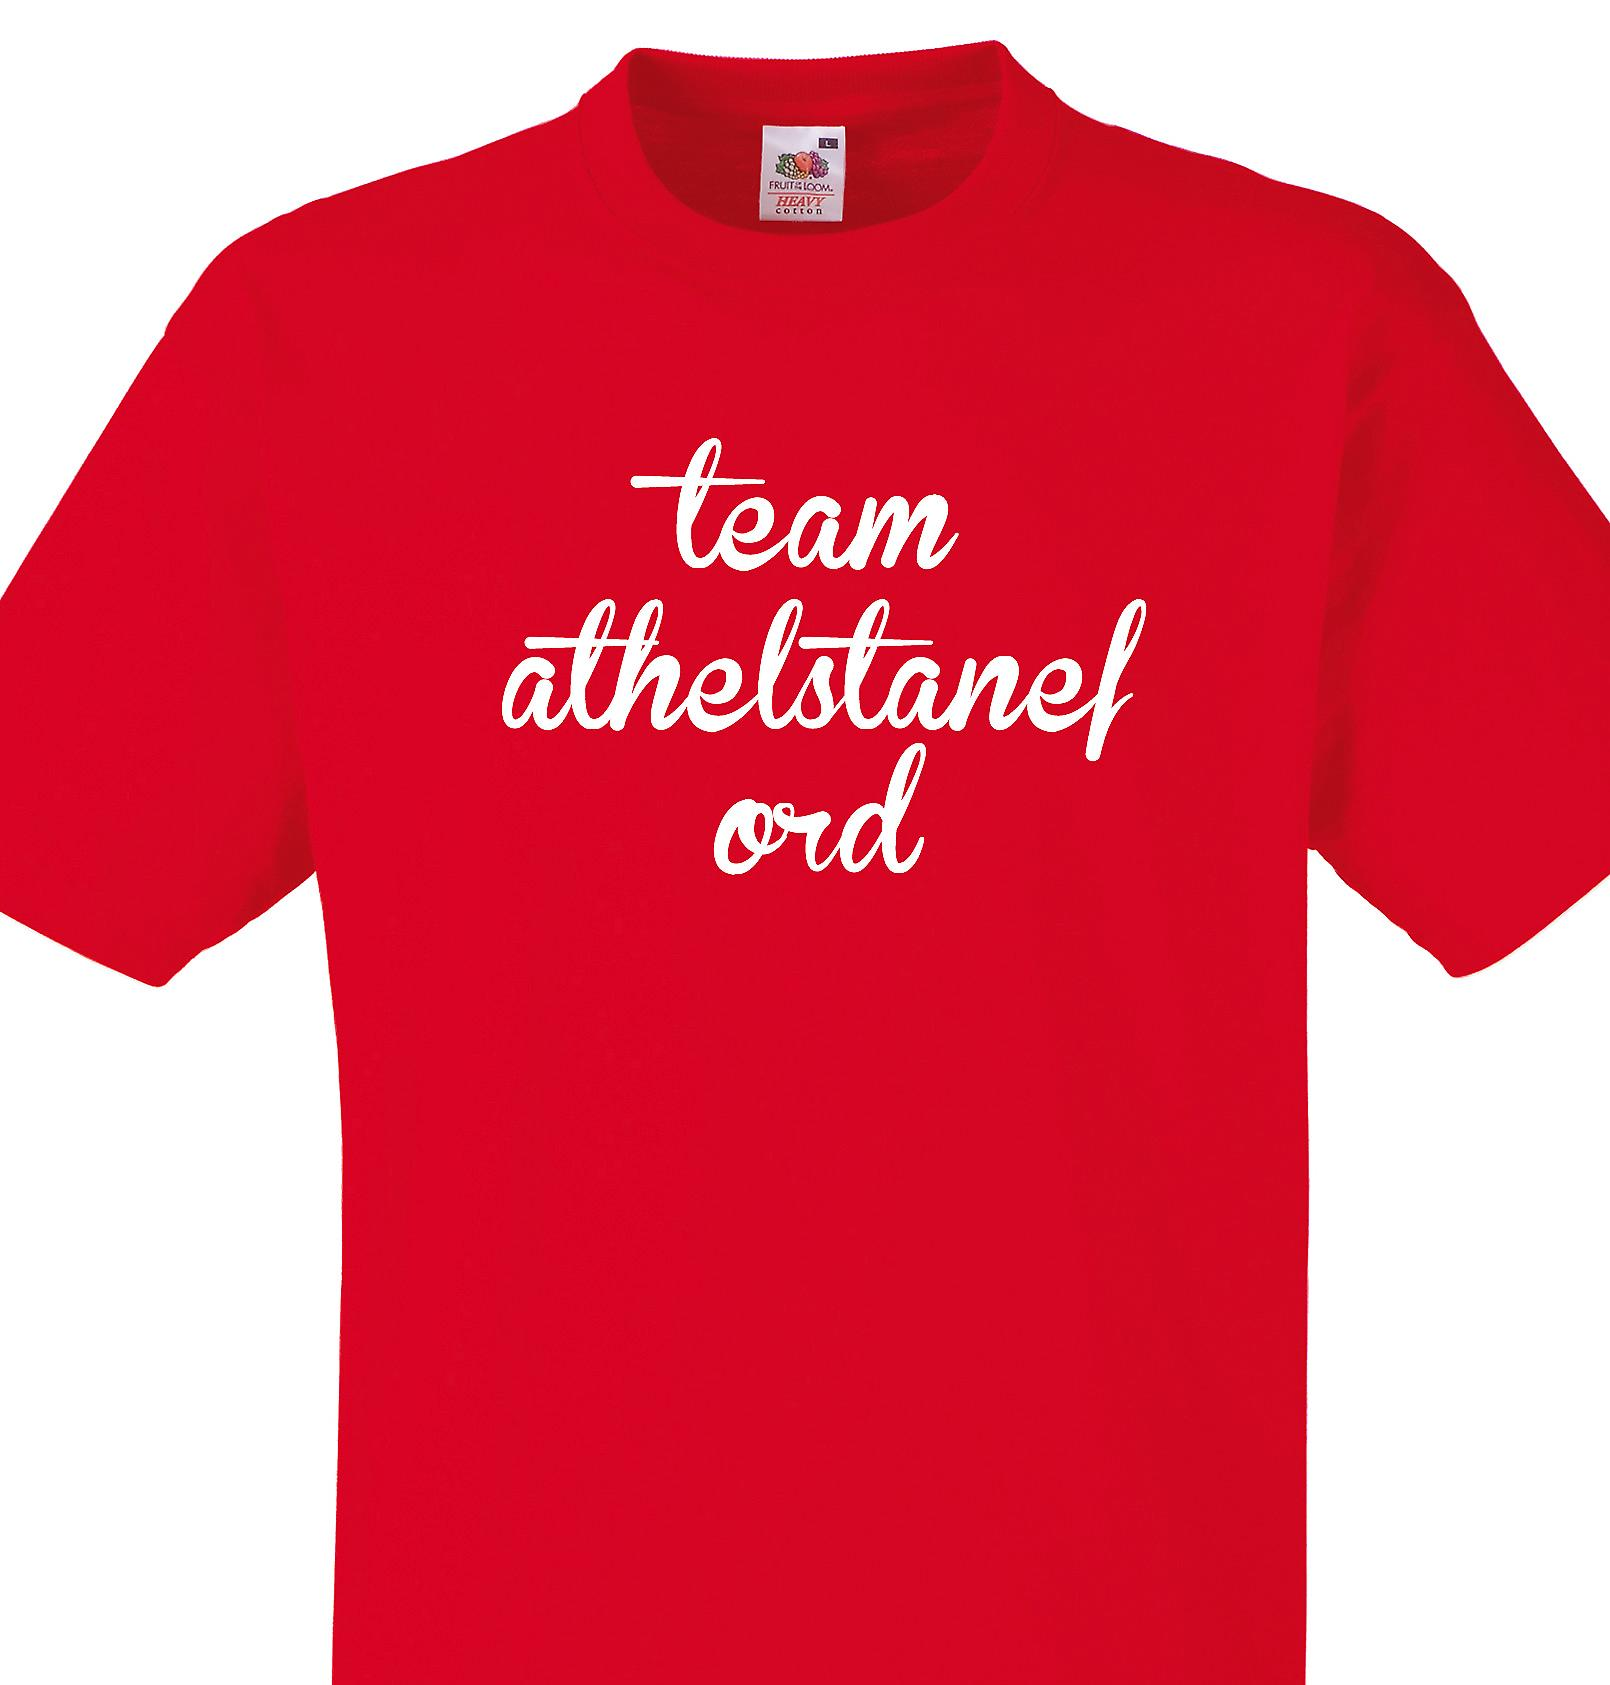 Team Athelstaneford Red T shirt